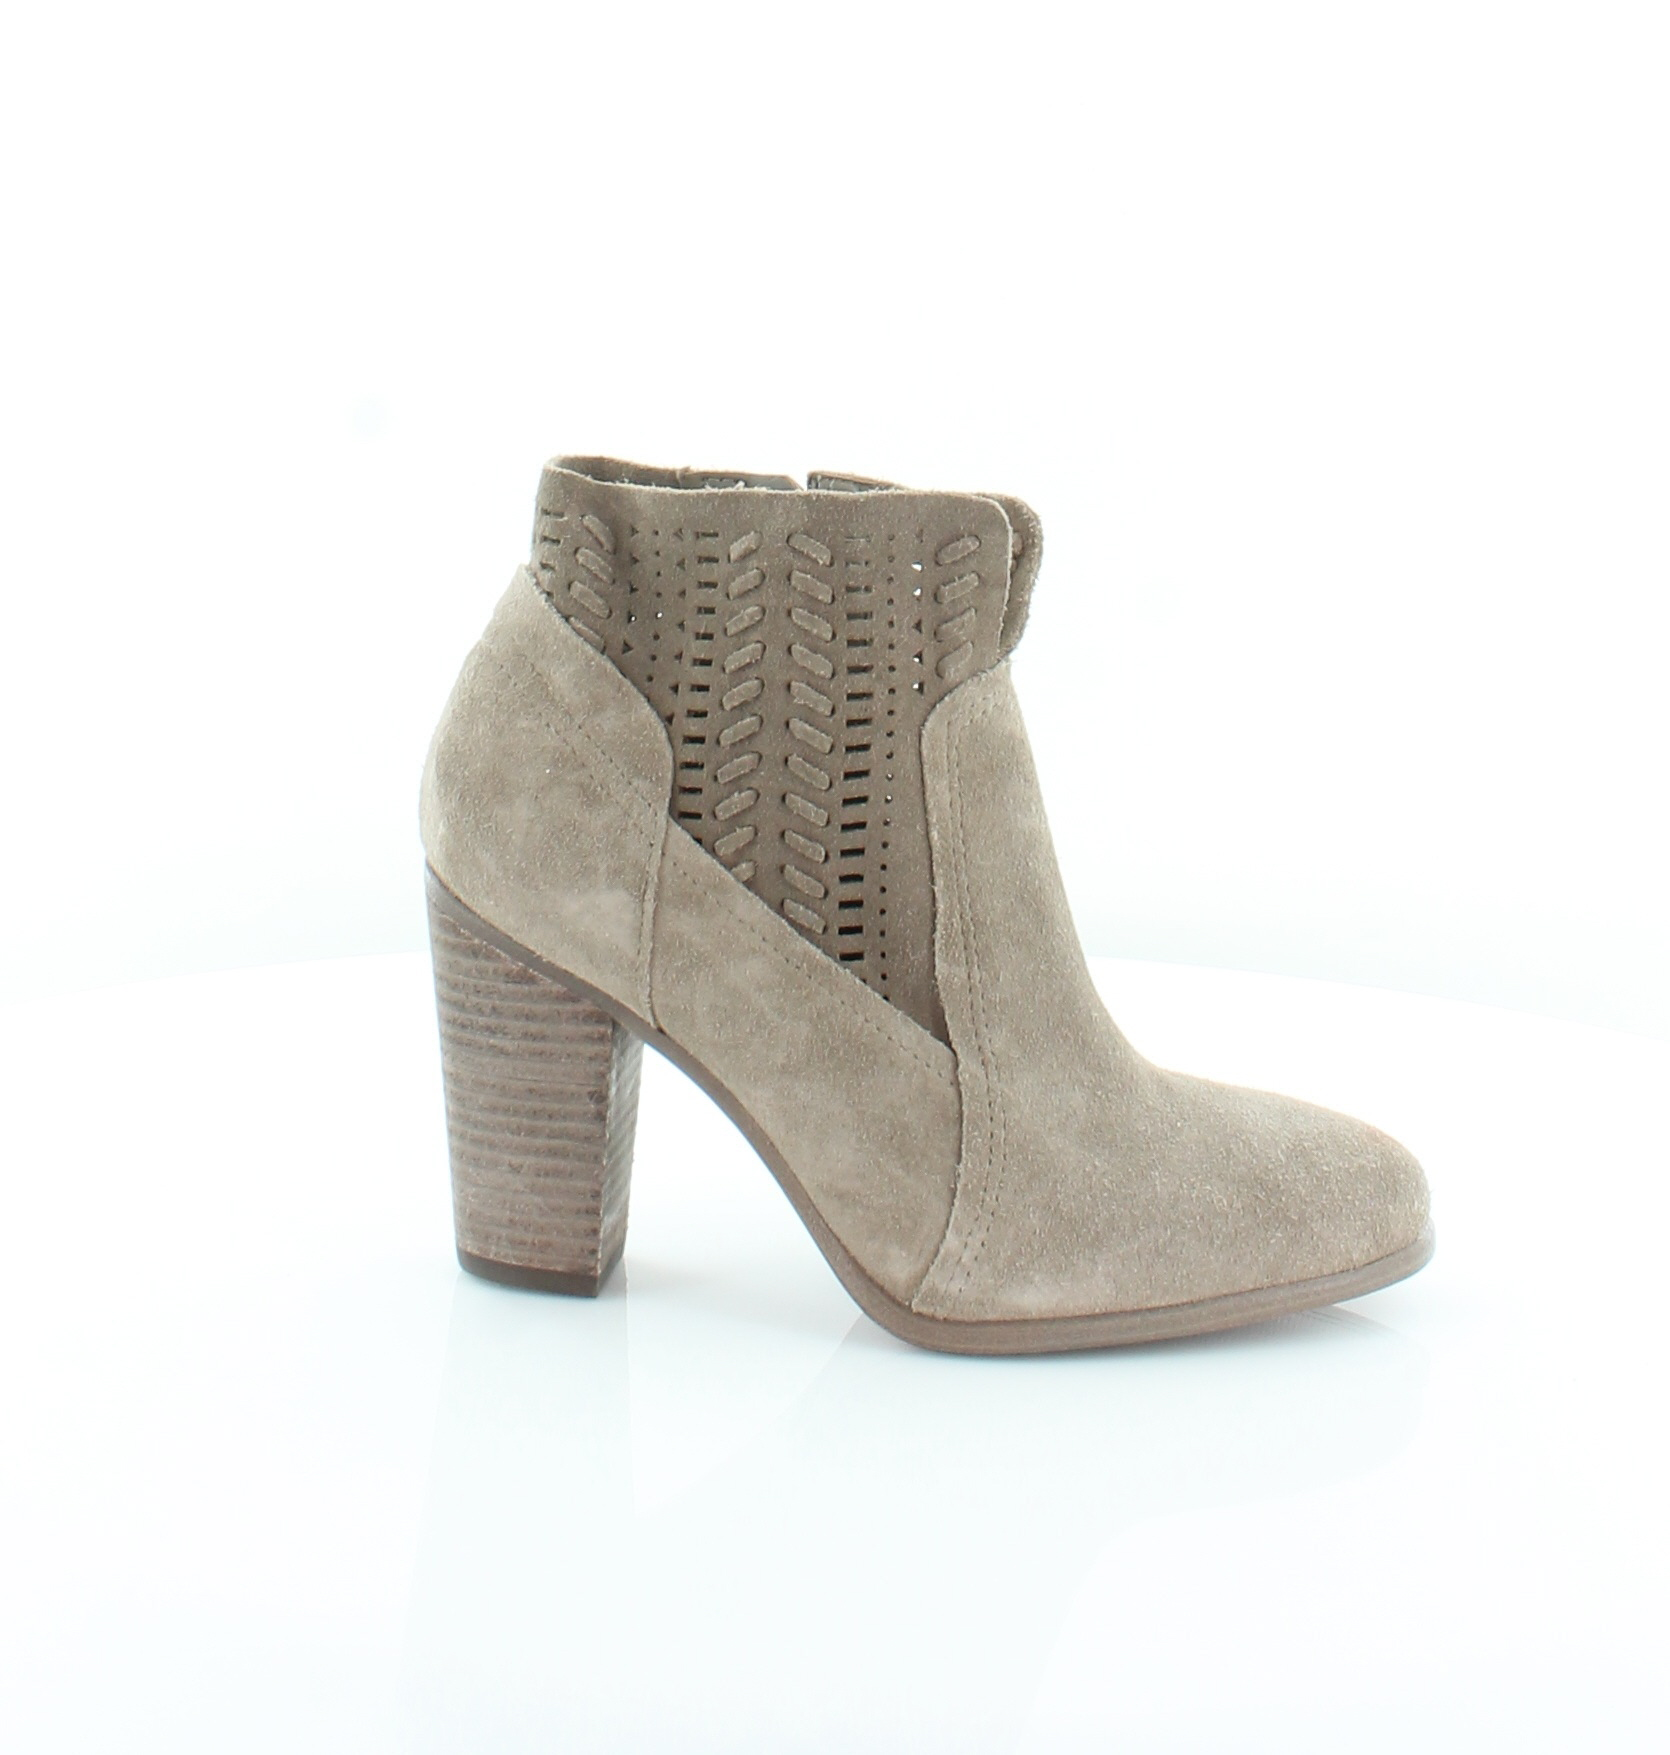 Vince Camuto Fenyia Brown Womens shoes Size 5.5 M Boots MSRP